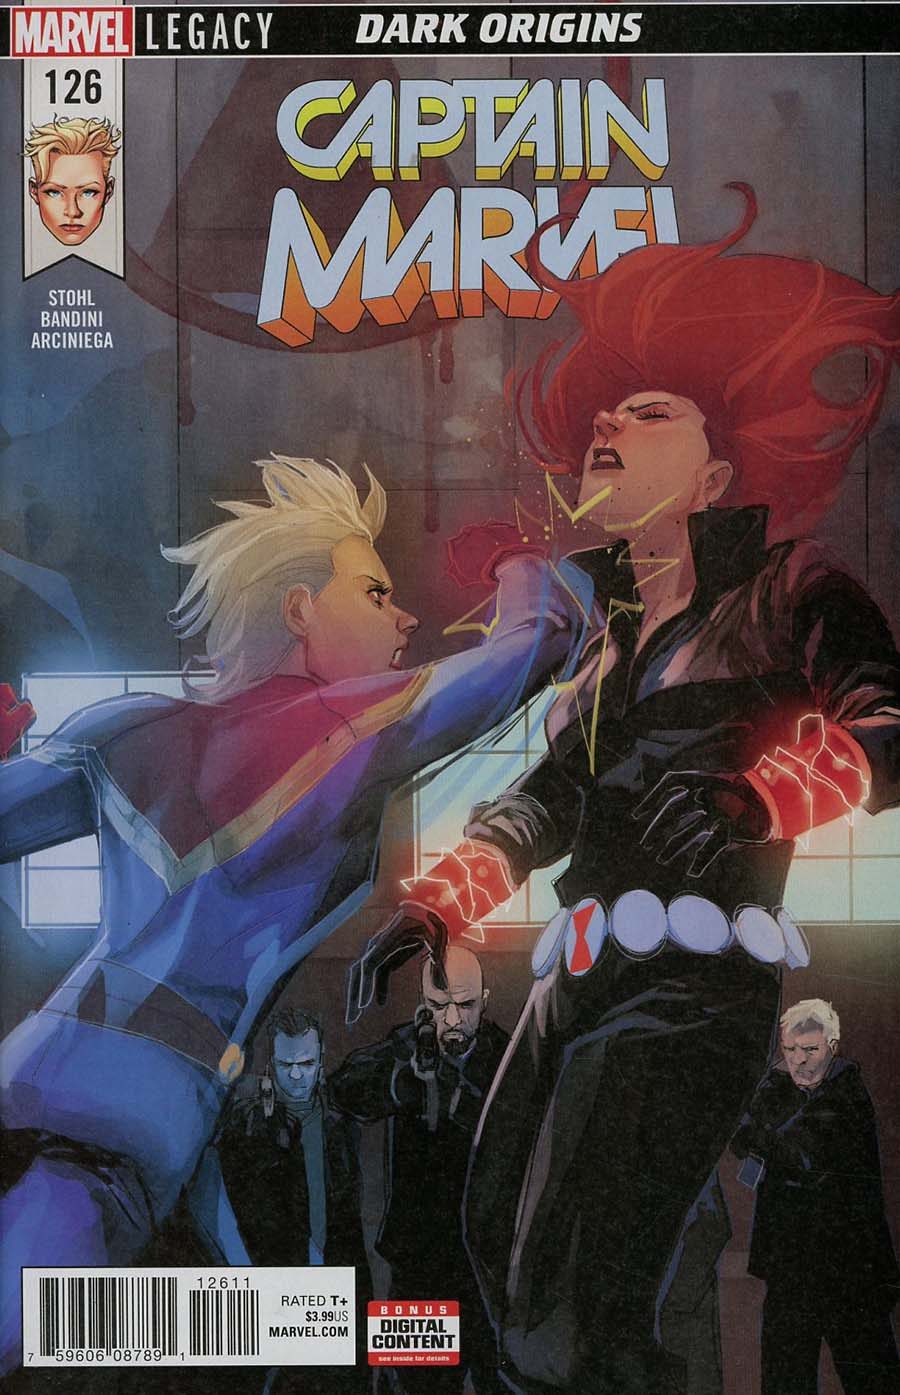 Captain Marvel Vol 8 #126 (Marvel Legacy Tie-In)